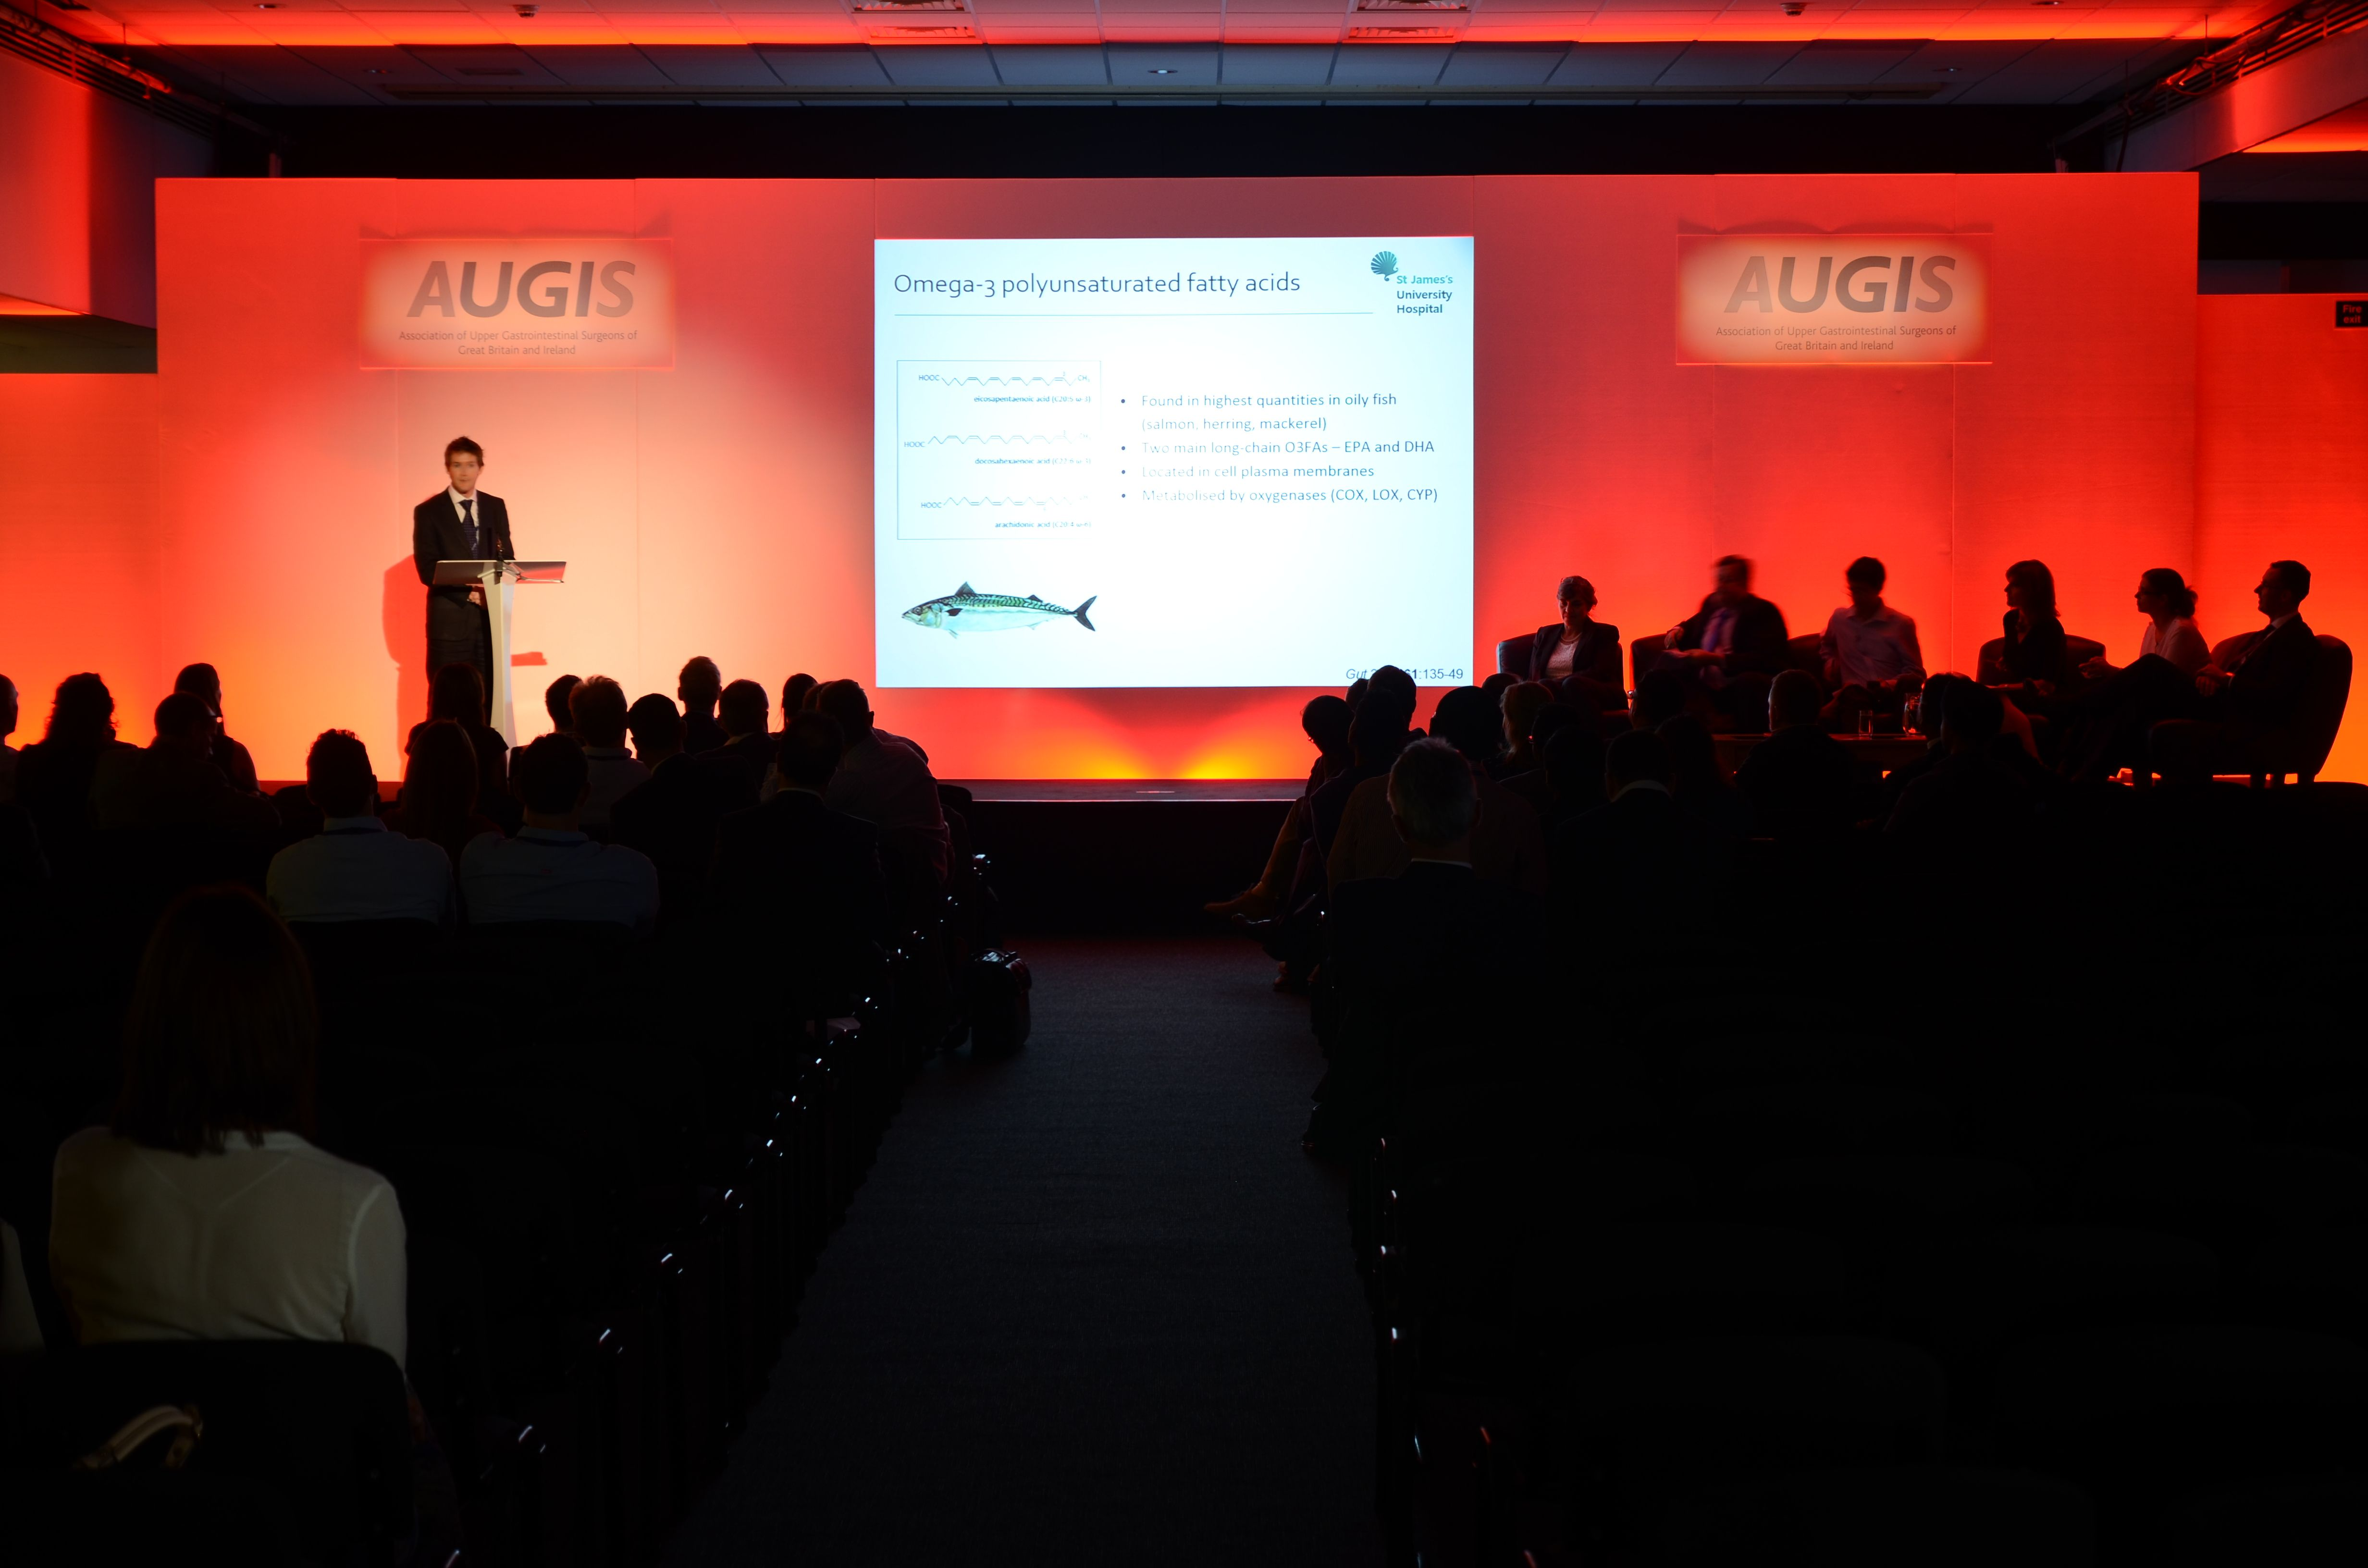 We provided the sound, lighting and AV support for a medical conference in Brighton. View this gallery to learn more & see a showcase of our work.